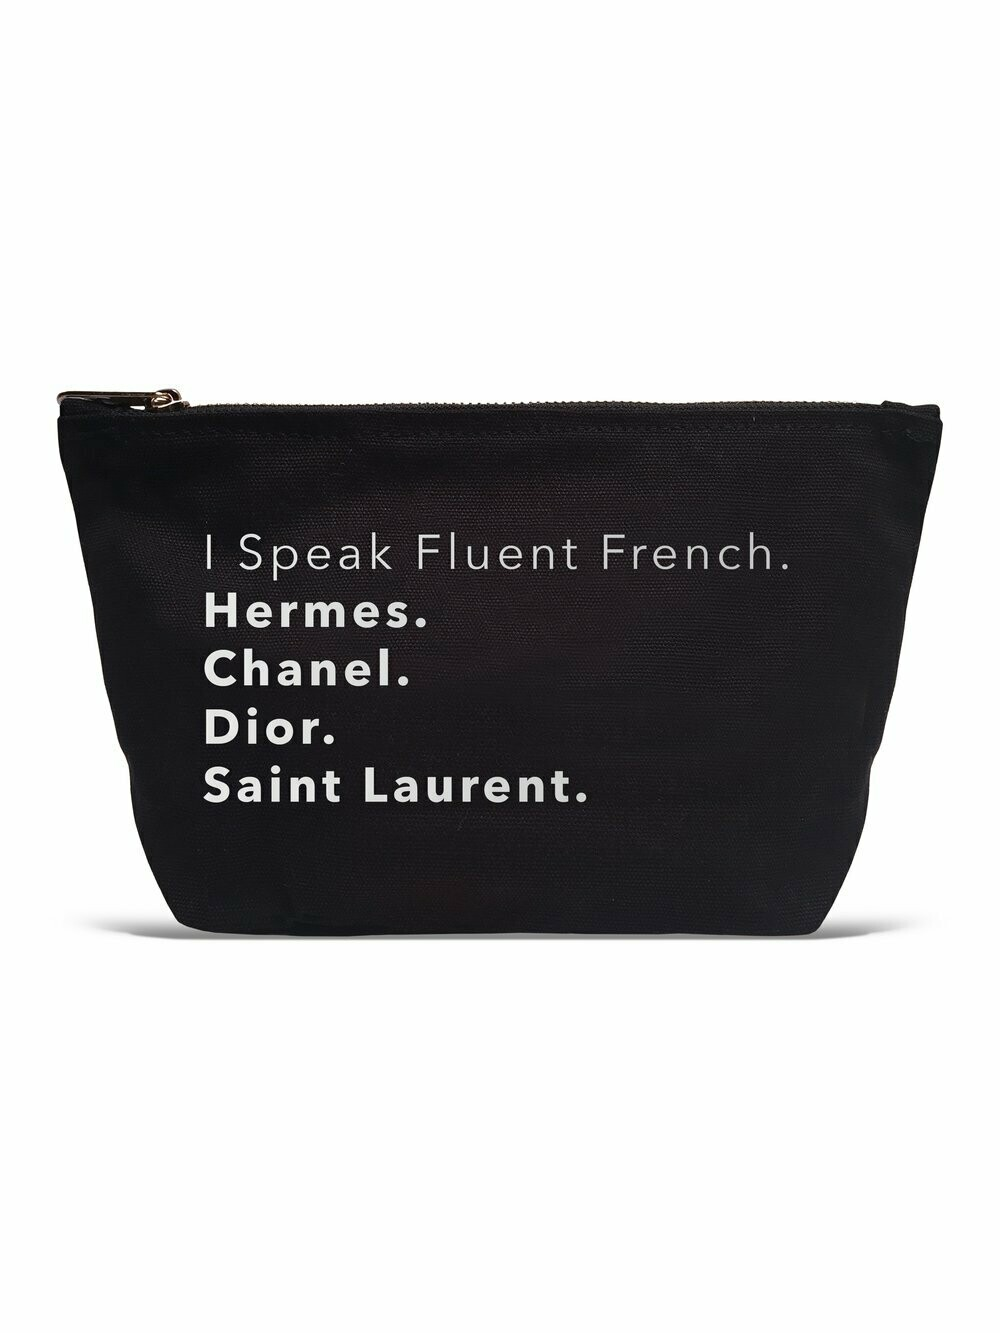 LA Trading Co Pouch- Fluent French